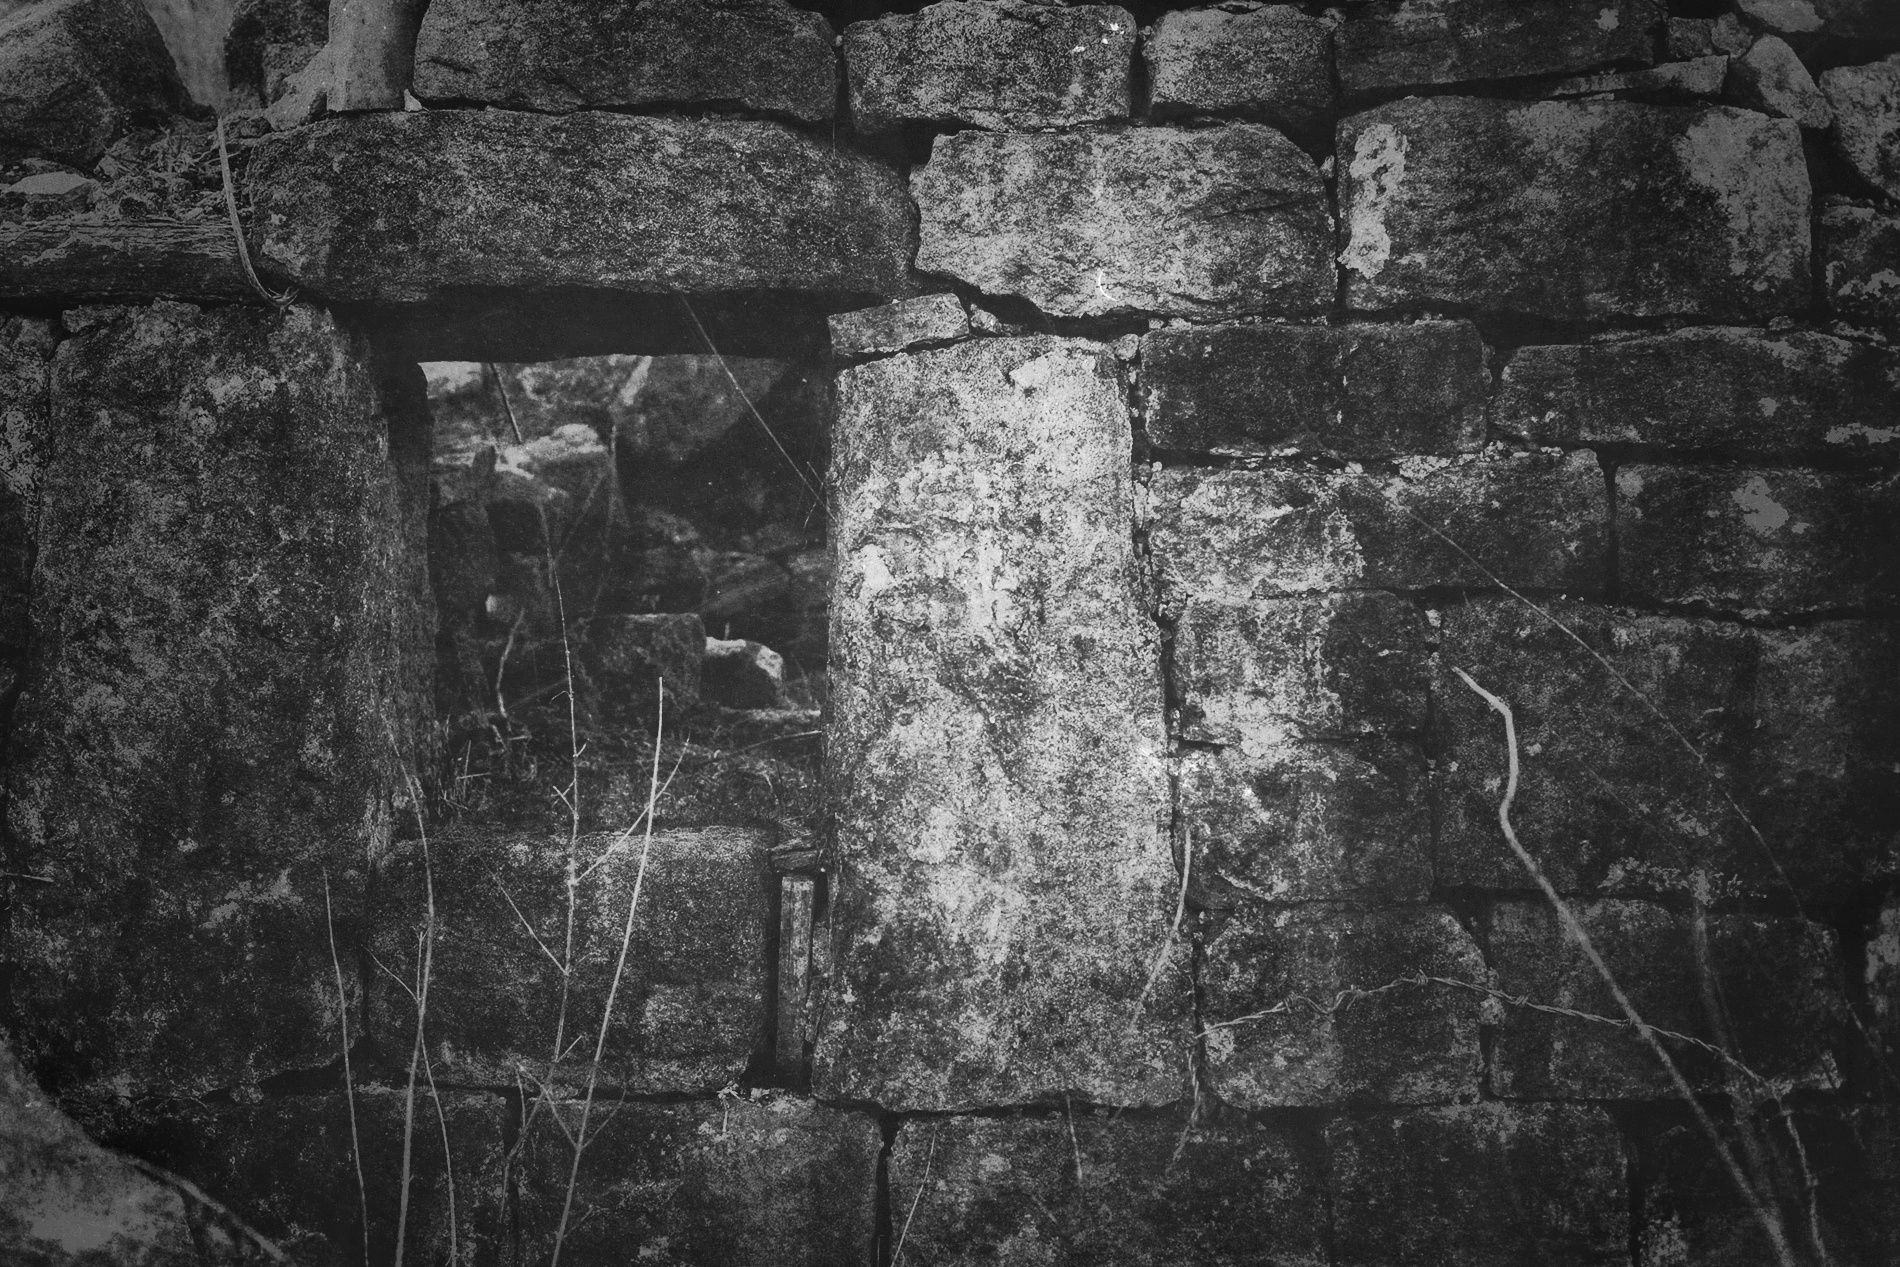 yorkshire-hebden-bridge-stone-blackandwhite-01